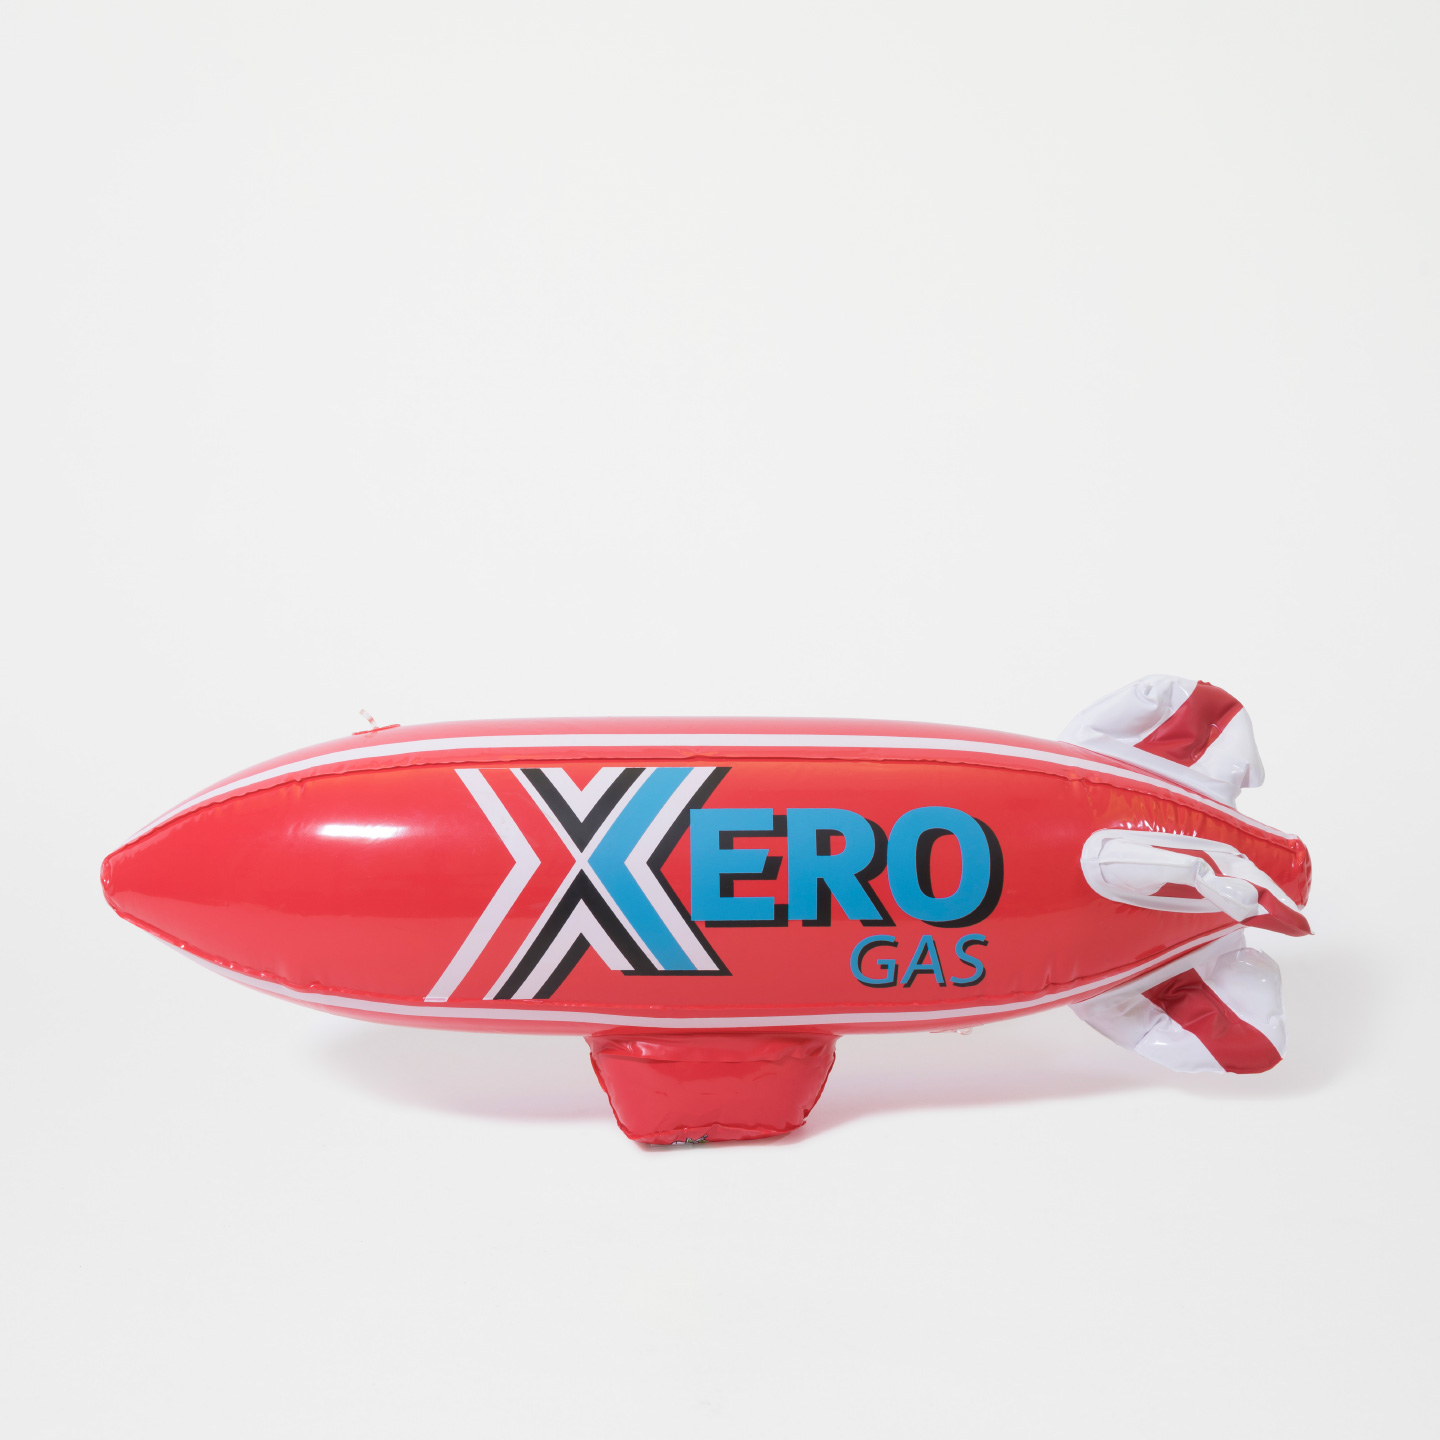 Xero Inflatable Blimp